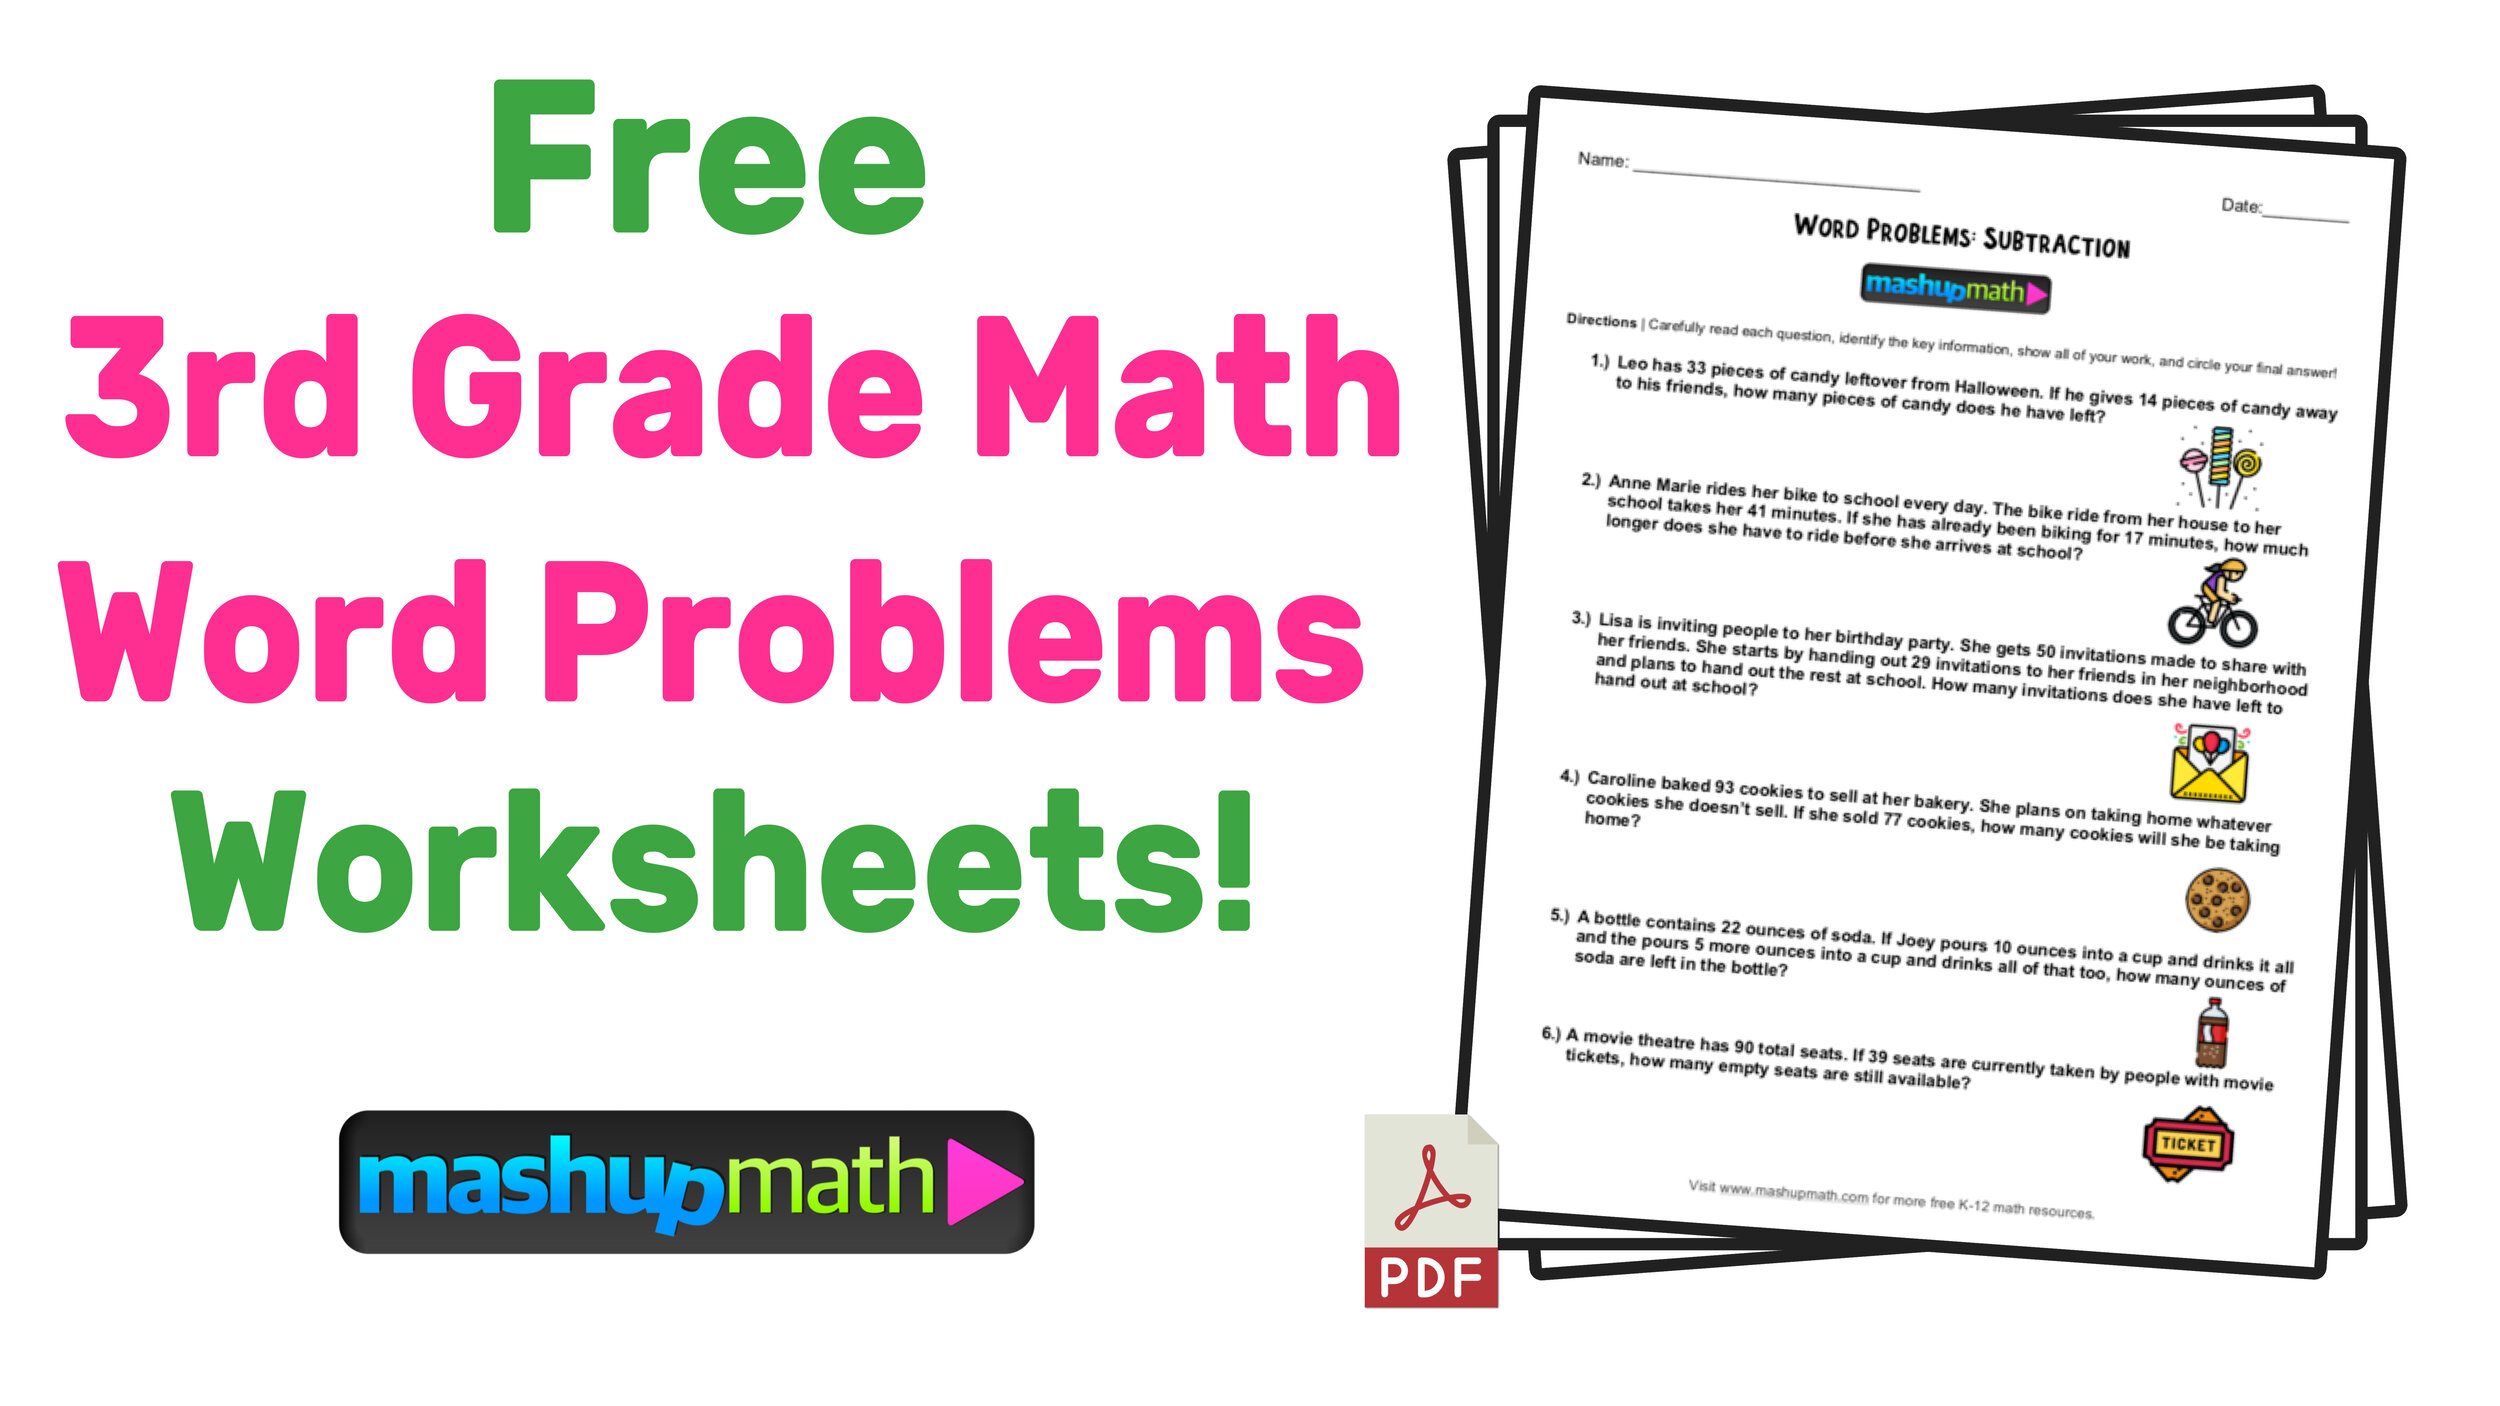 3rd Grade Math Word Problems: Free Worksheets with Answers — Mashup Math [ 1406 x 2500 Pixel ]